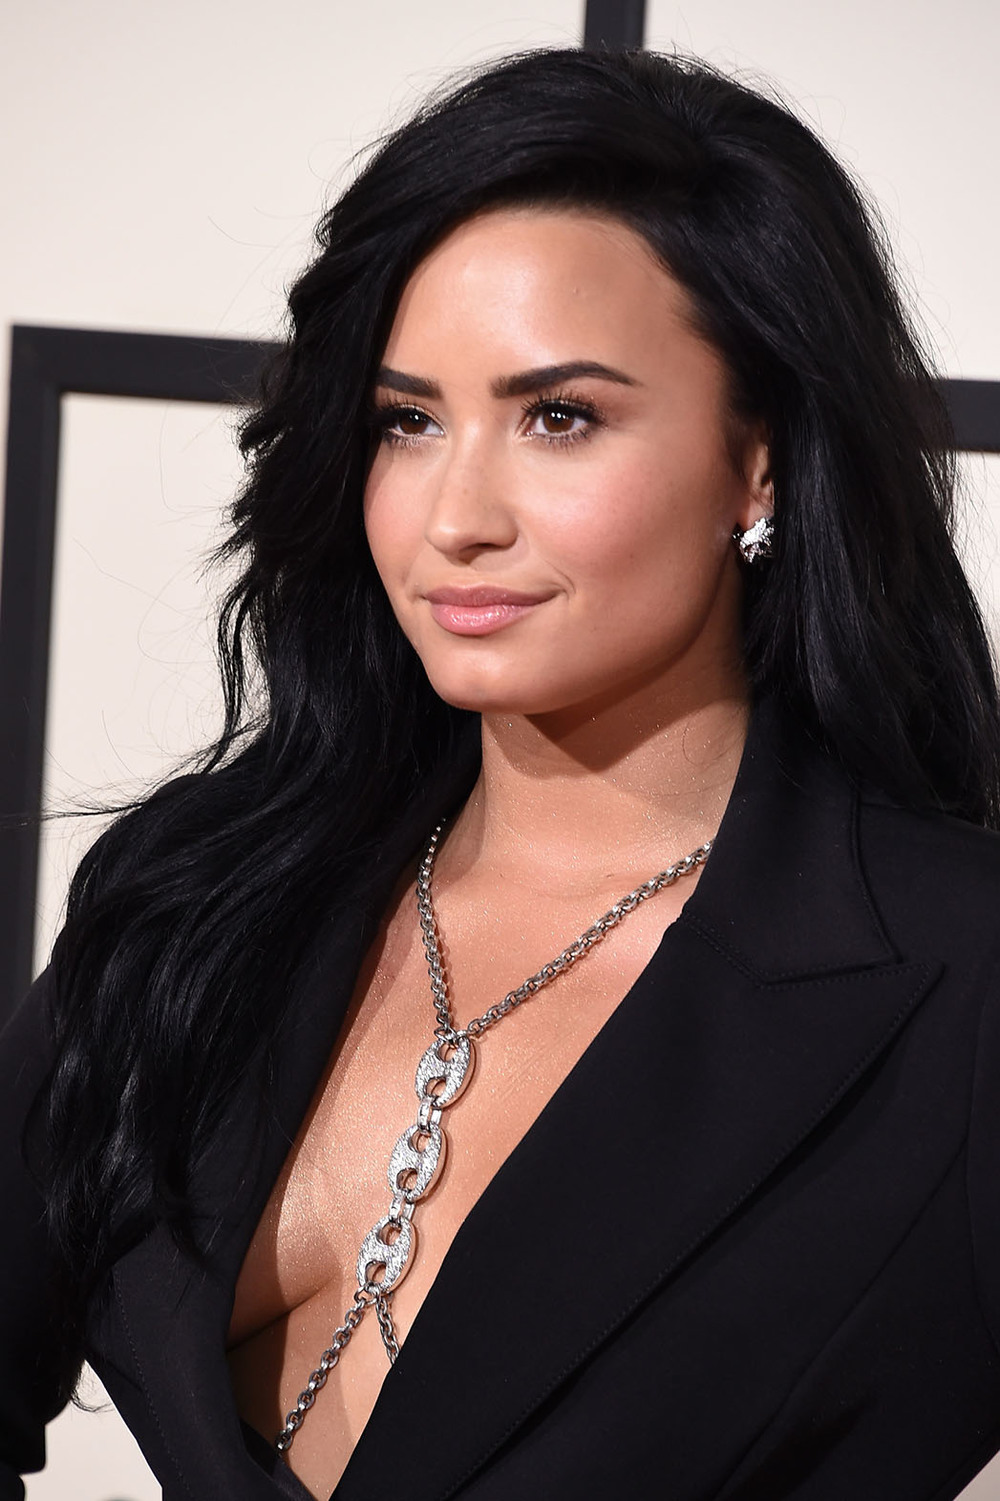 demi_lovato_body_chain.jpg